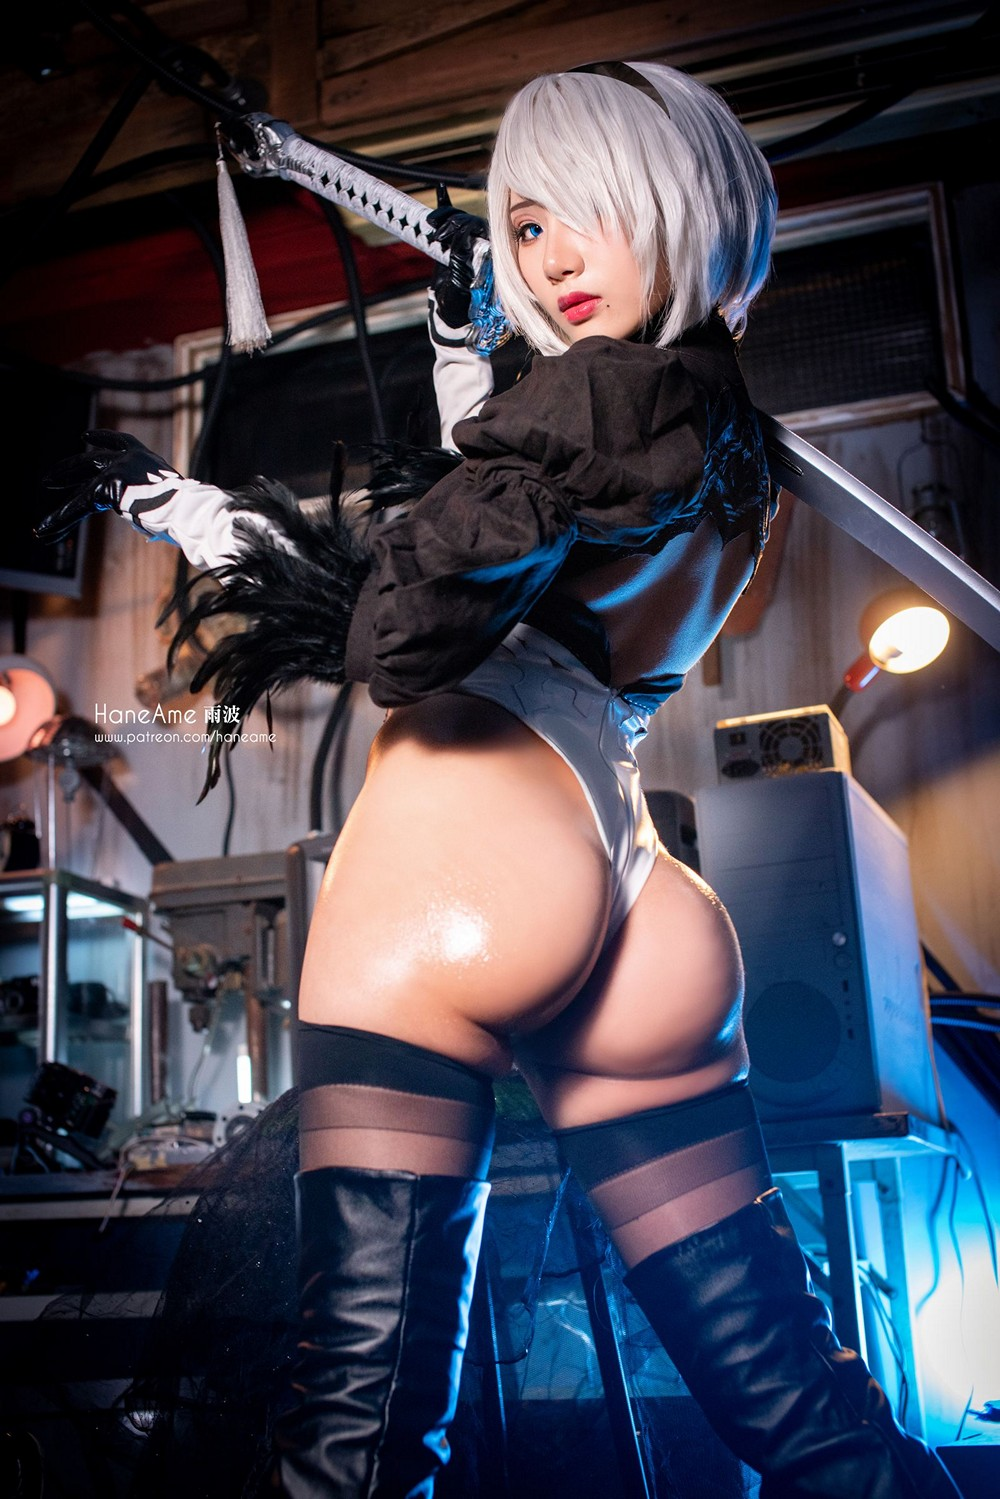 HaneAme 雨波 1 - COSPLAY -